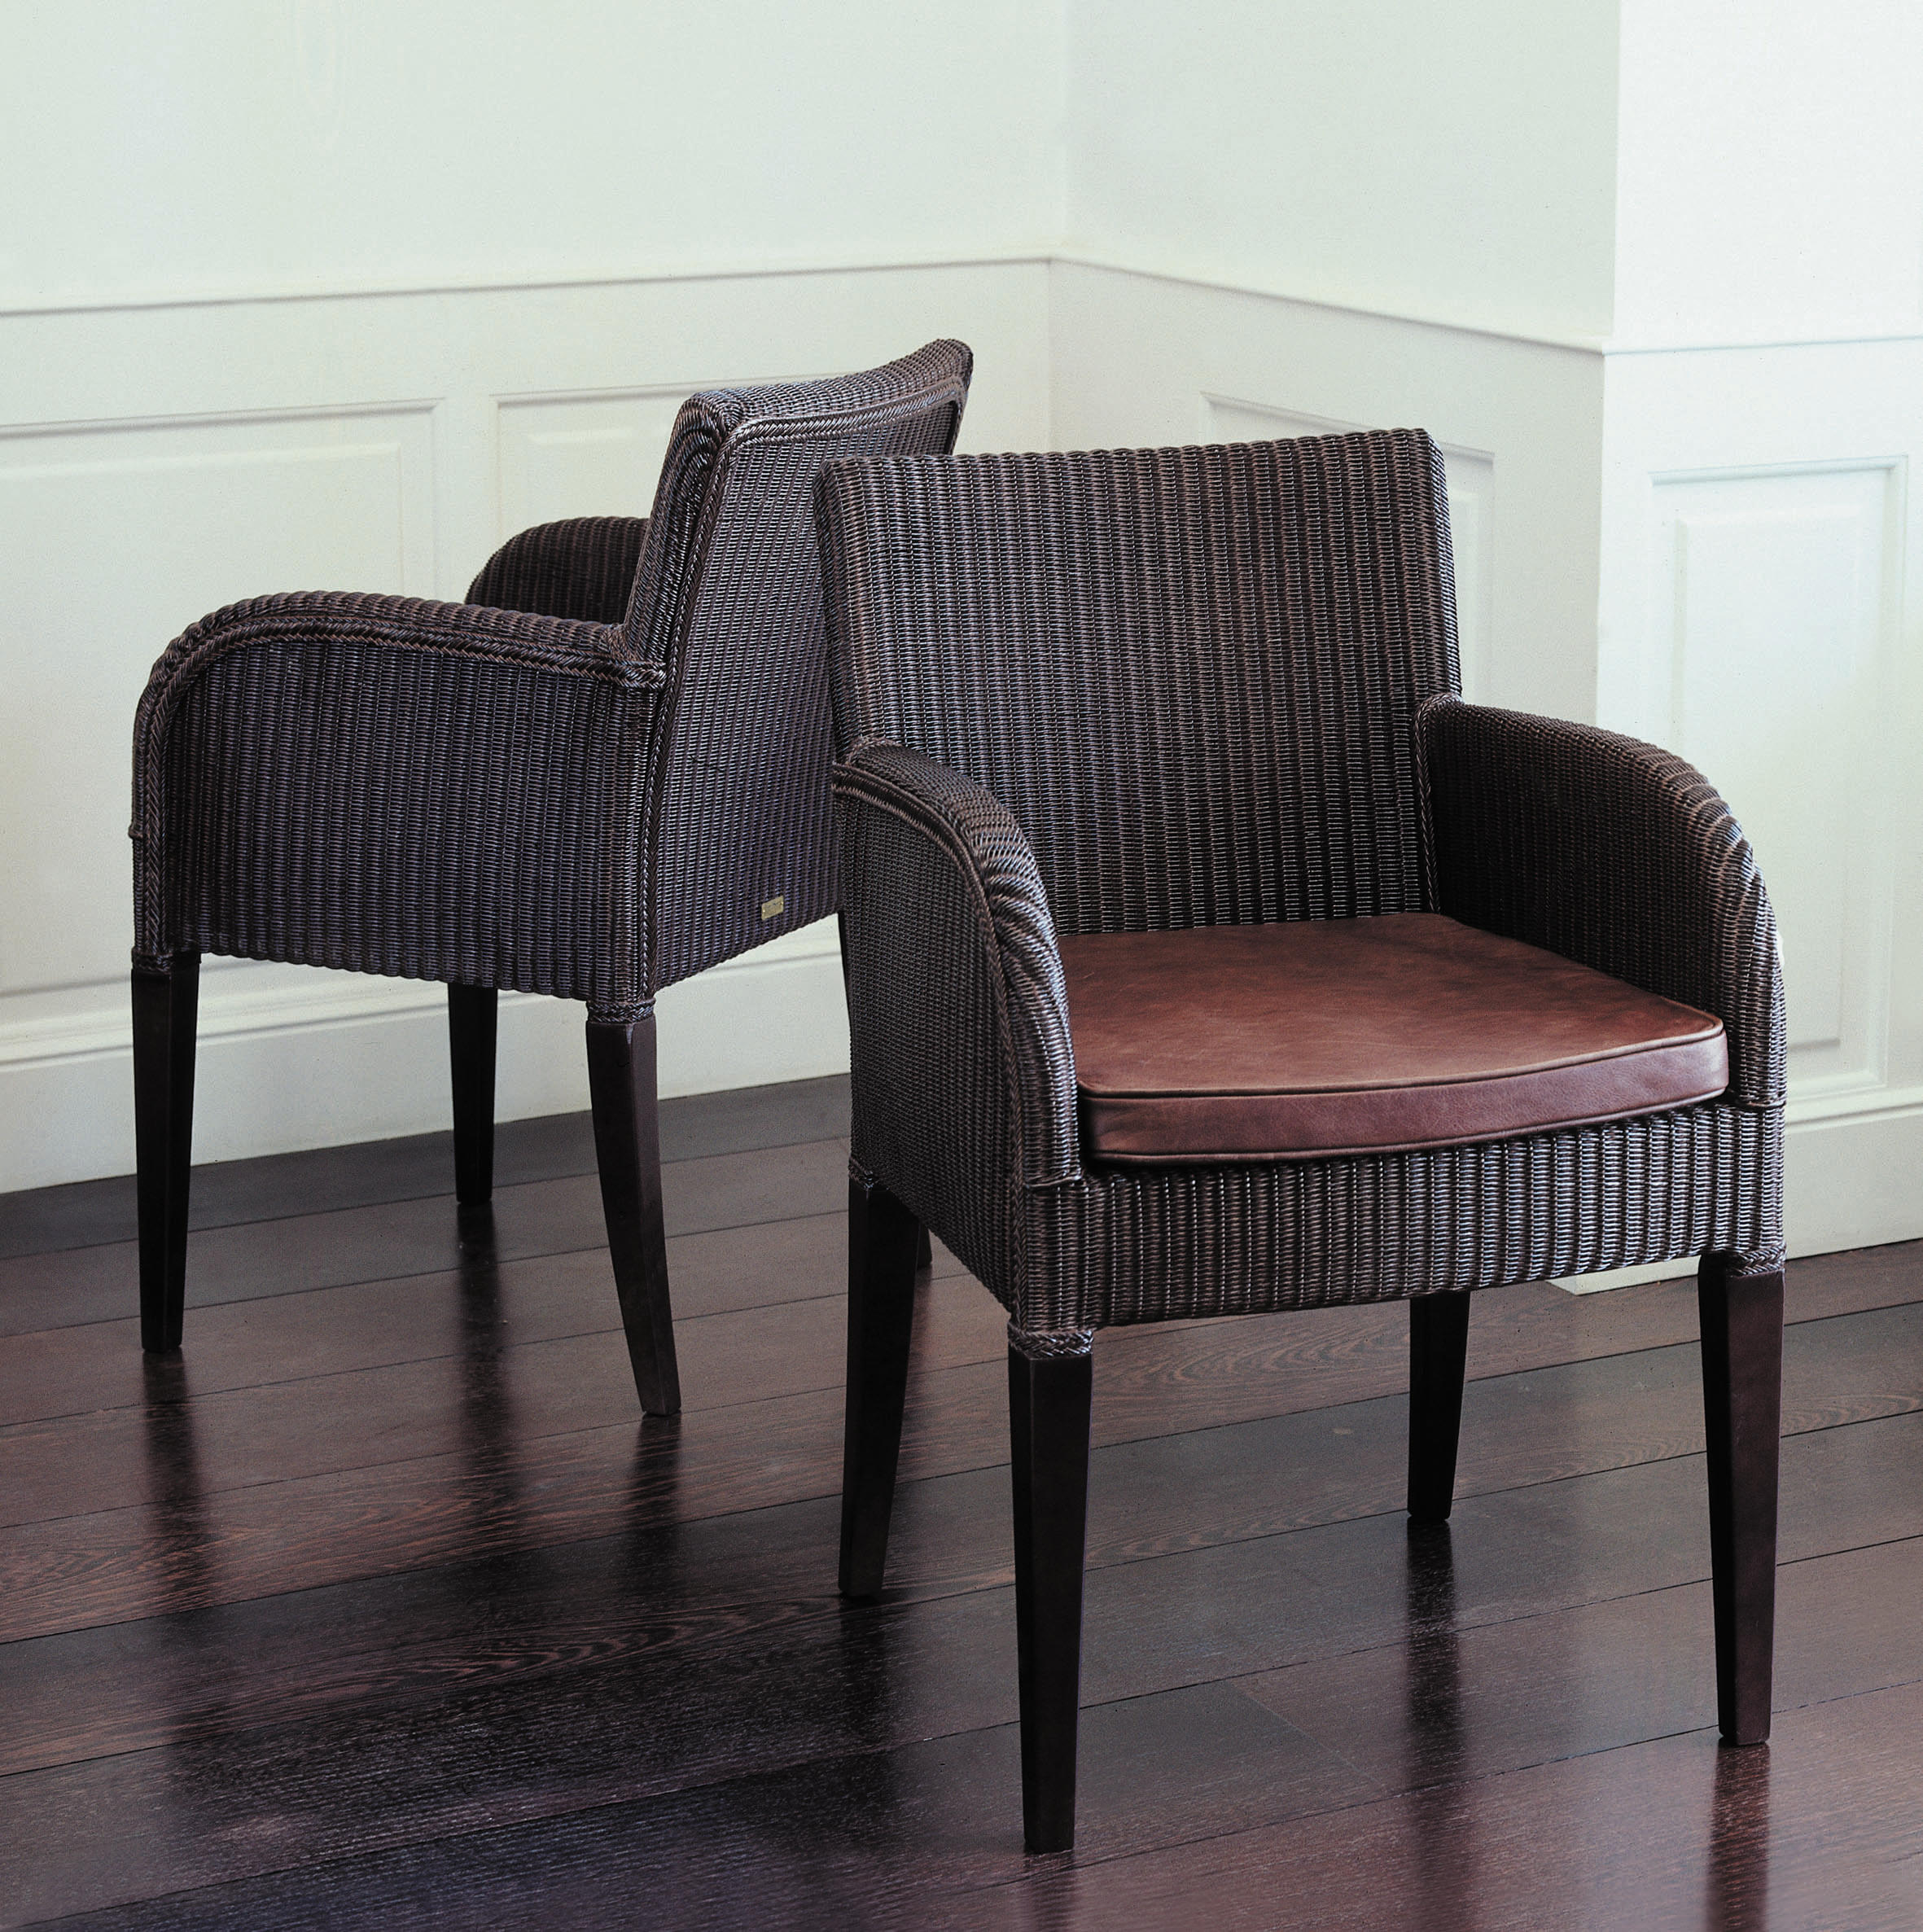 edward chairs from vincent sheppard architonic. Black Bedroom Furniture Sets. Home Design Ideas